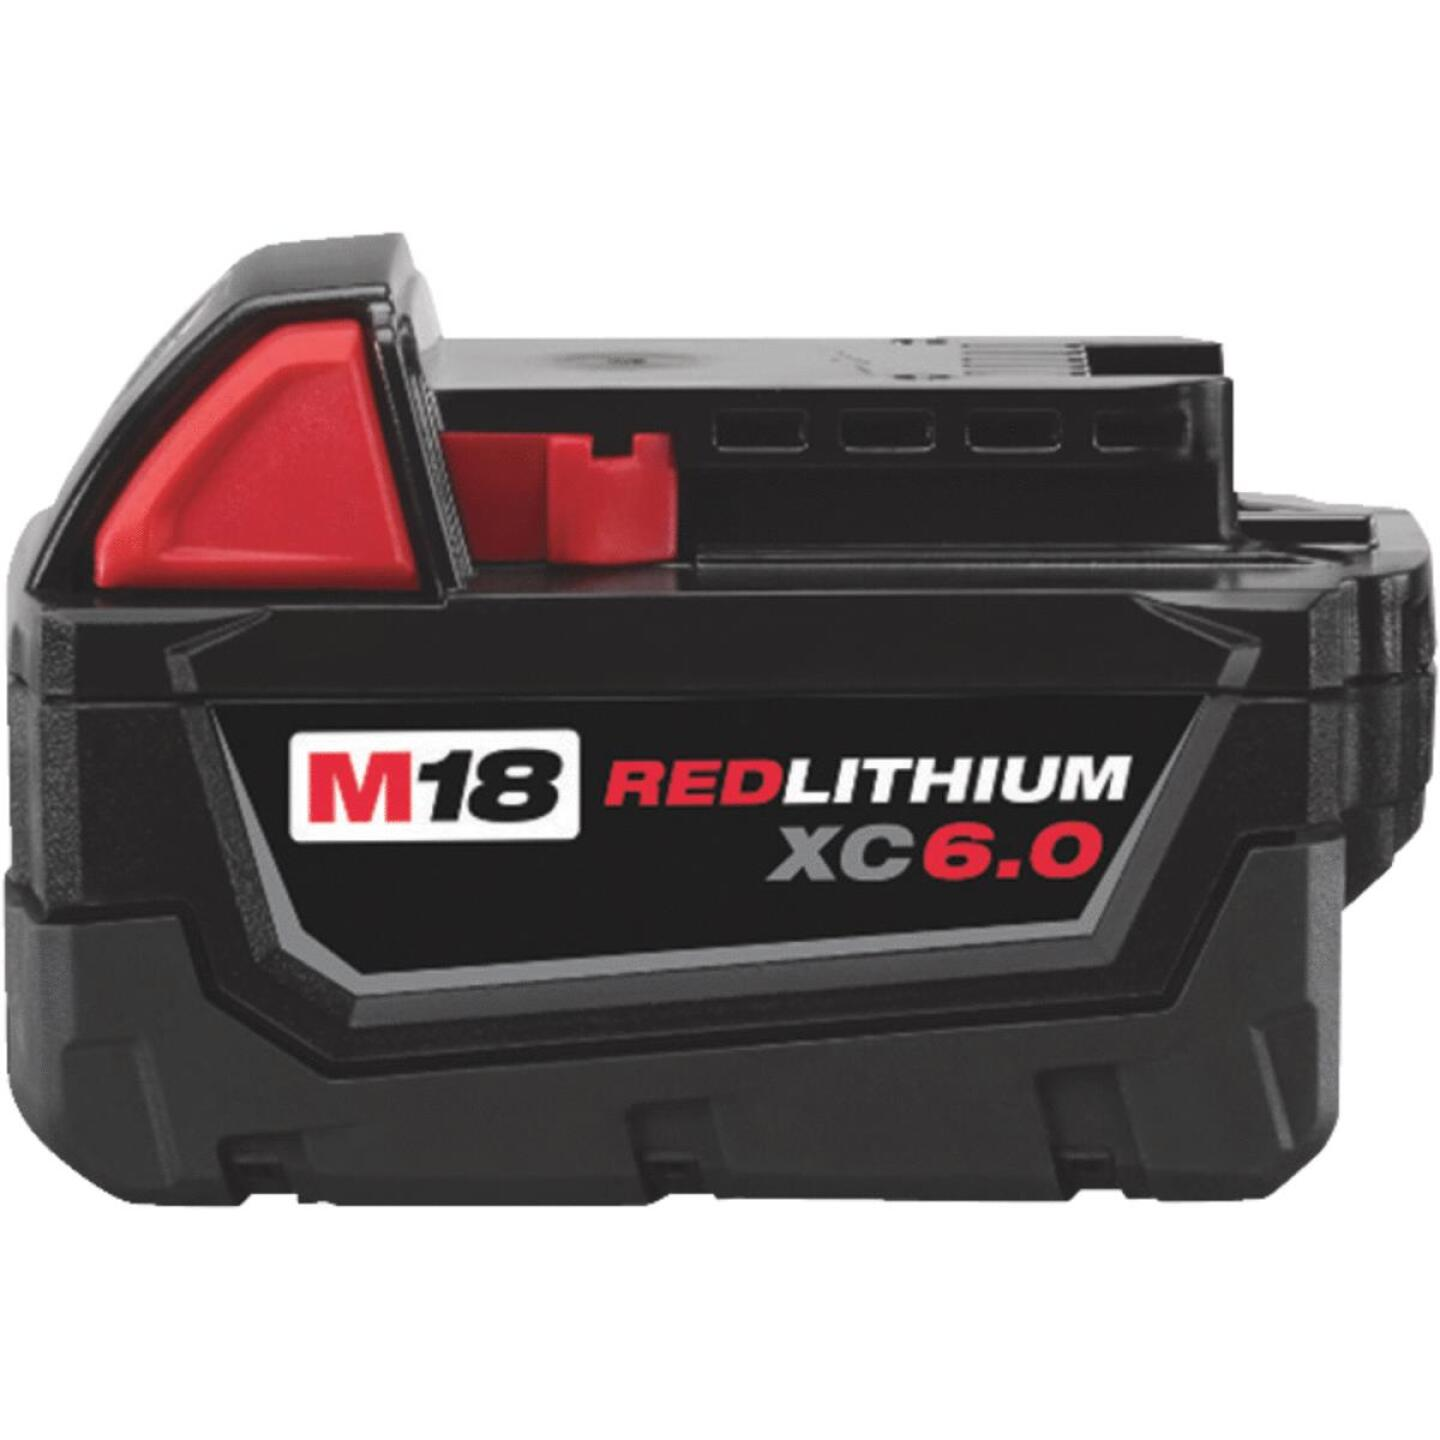 Milwaukee M18 REDLITHIUM XC 18 Volt Lithium-Ion 6.0 Ah Extended Capacity Tool Battery Image 1